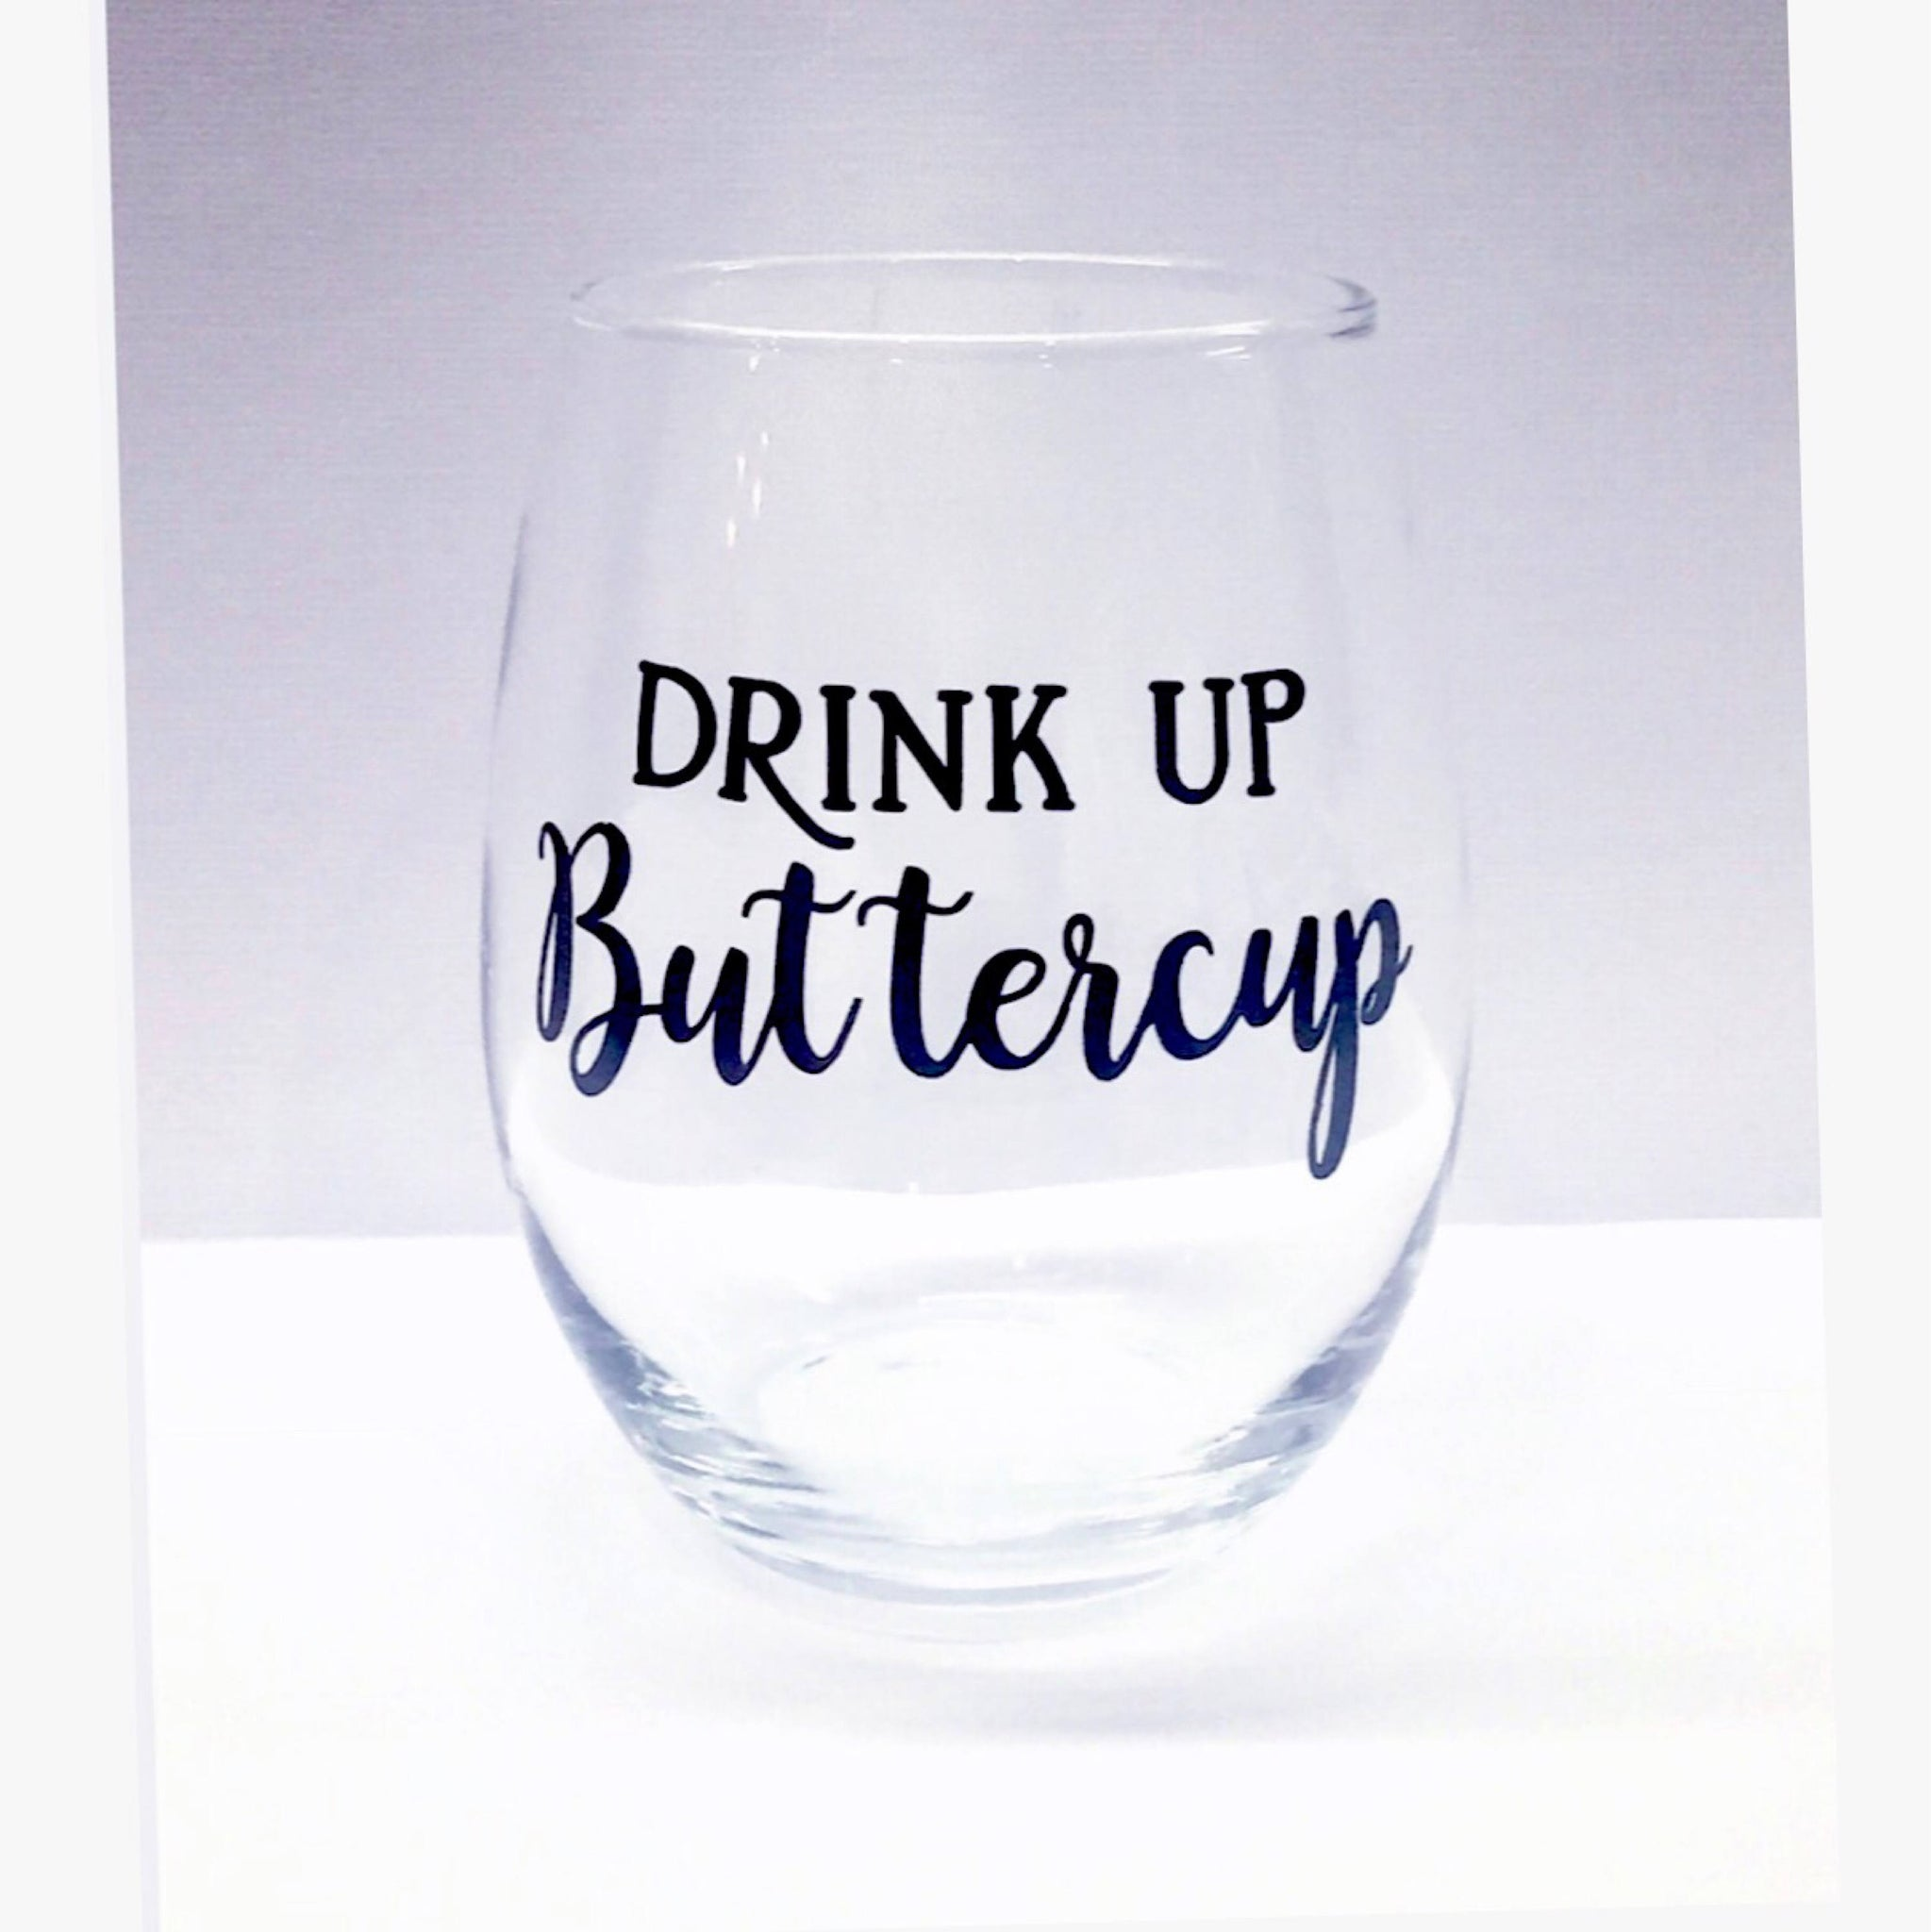 Drink up Buttercup stemless wine glass/ cocktail glass/ birthday gift/ personalized glass/ custom cocktail glasses